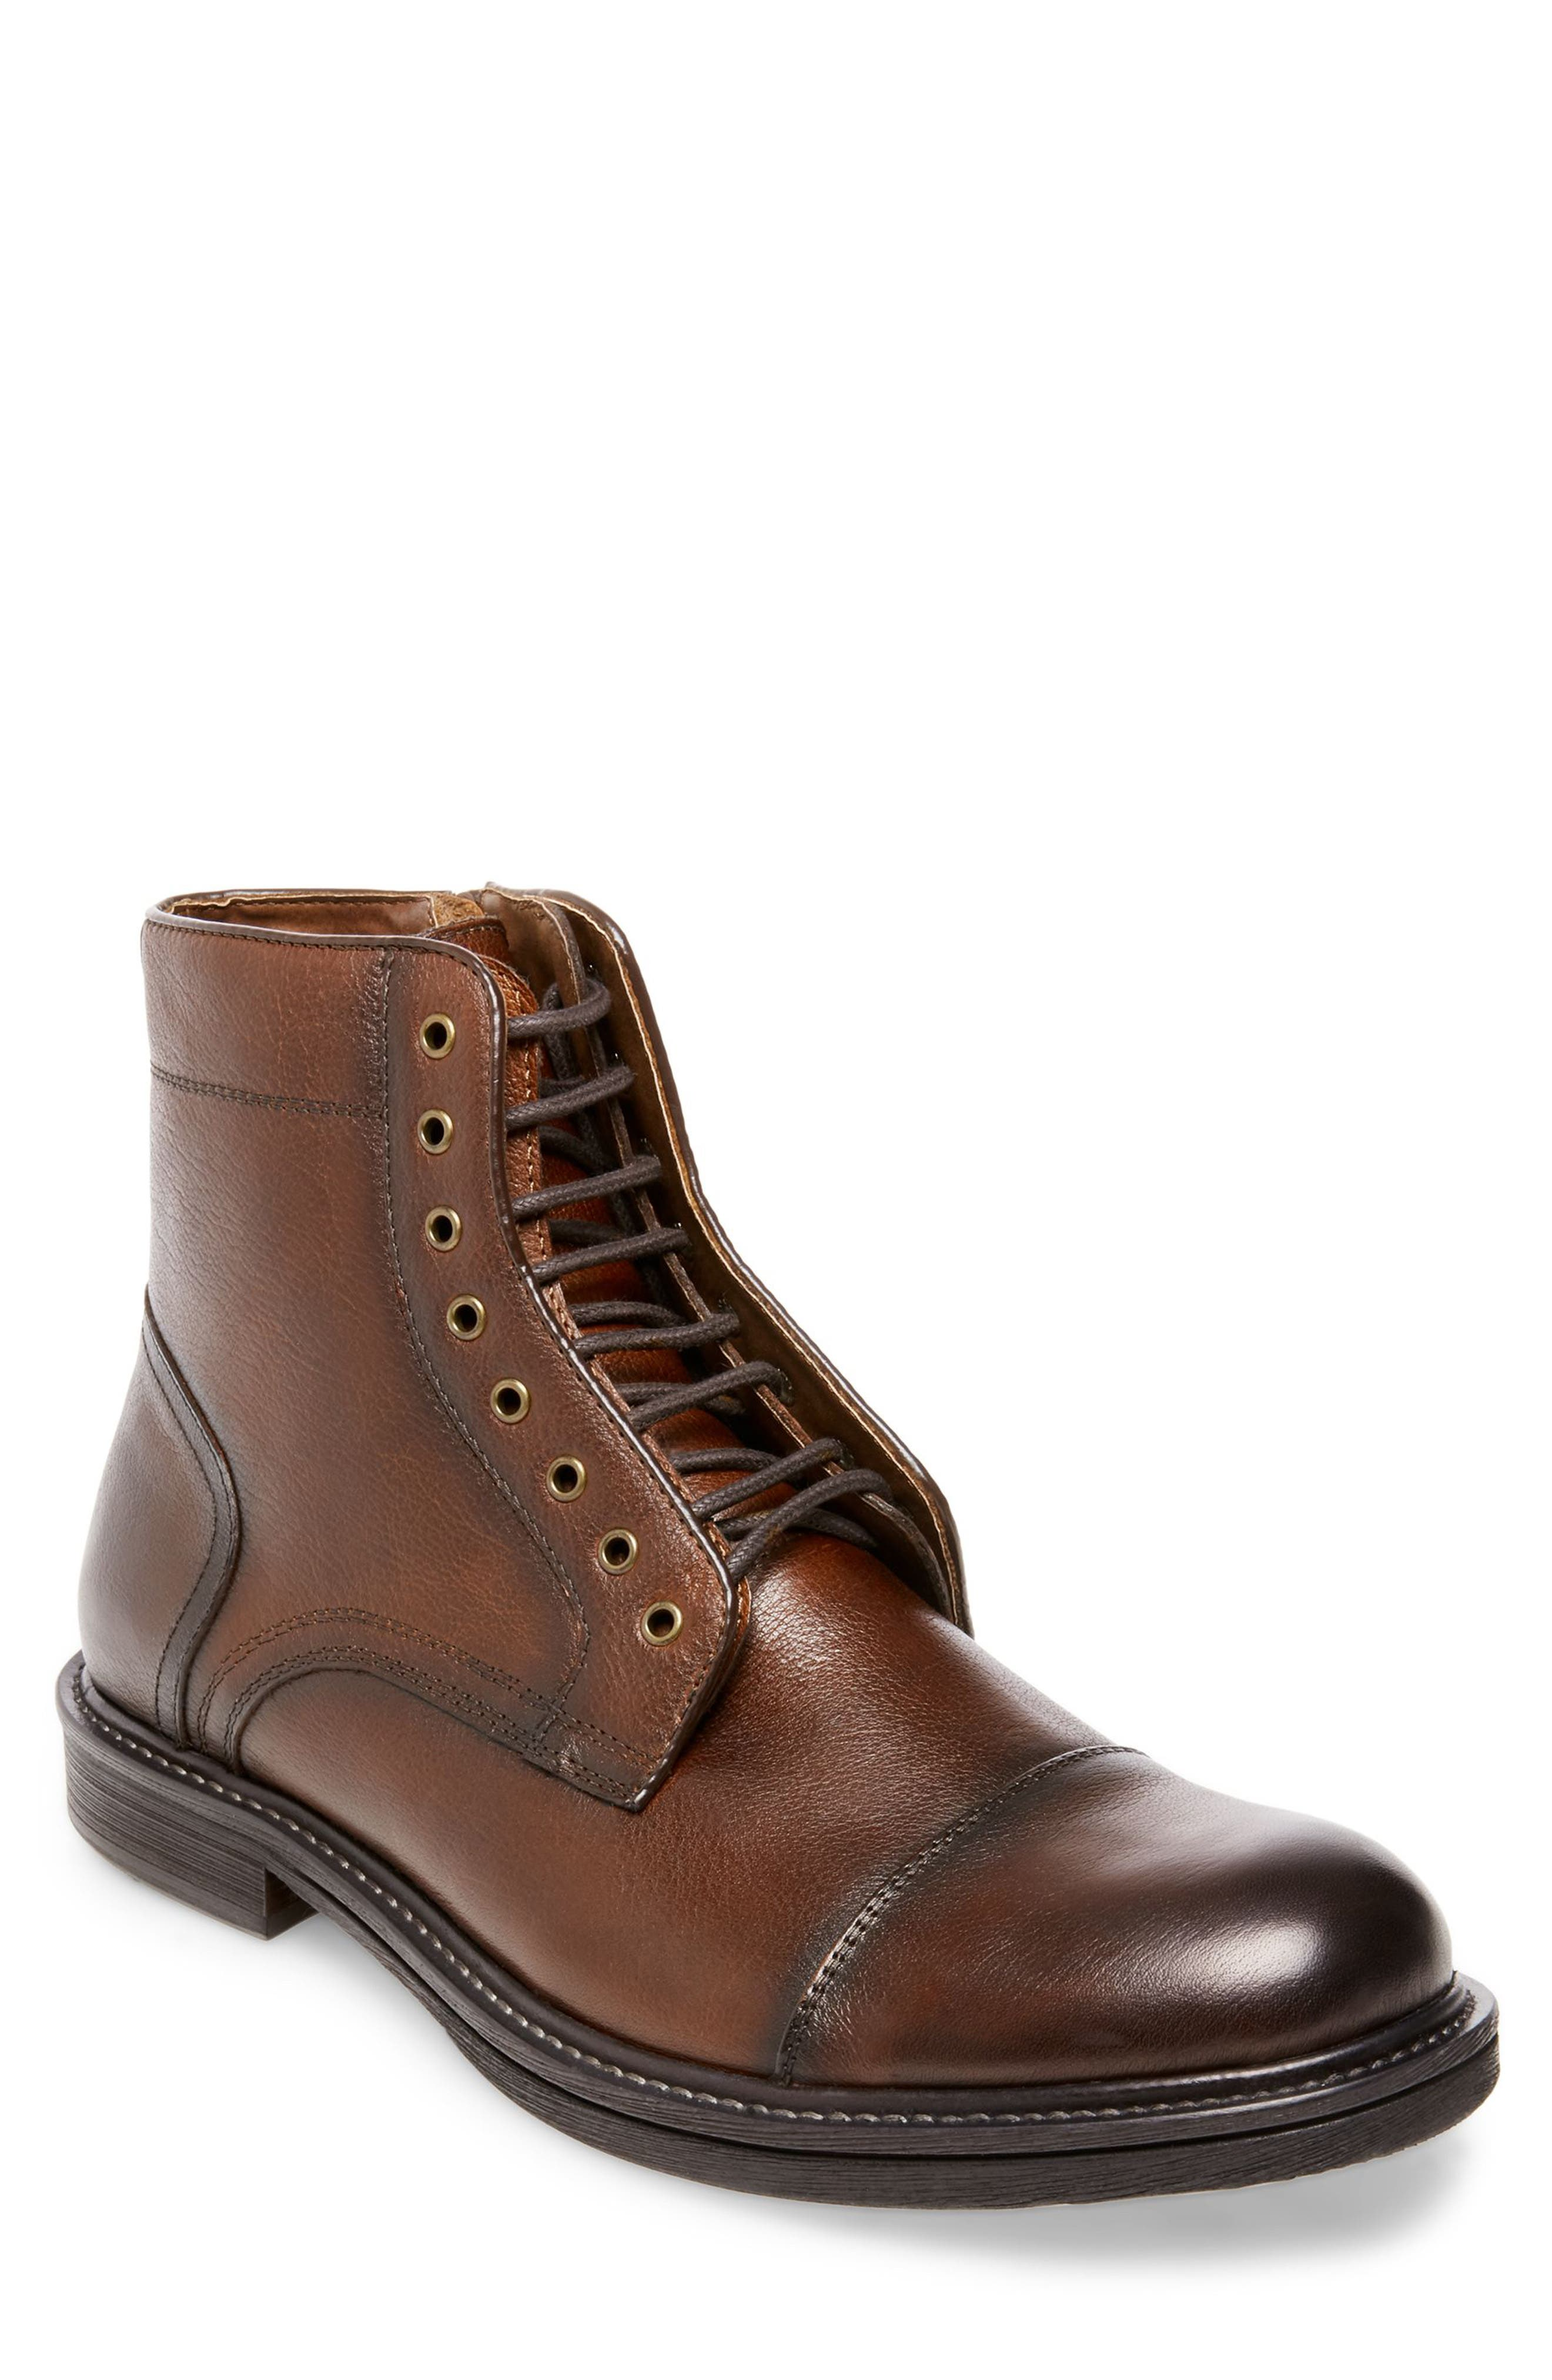 Chariot Boot,                         Main,                         color, COGNAC LEATHER